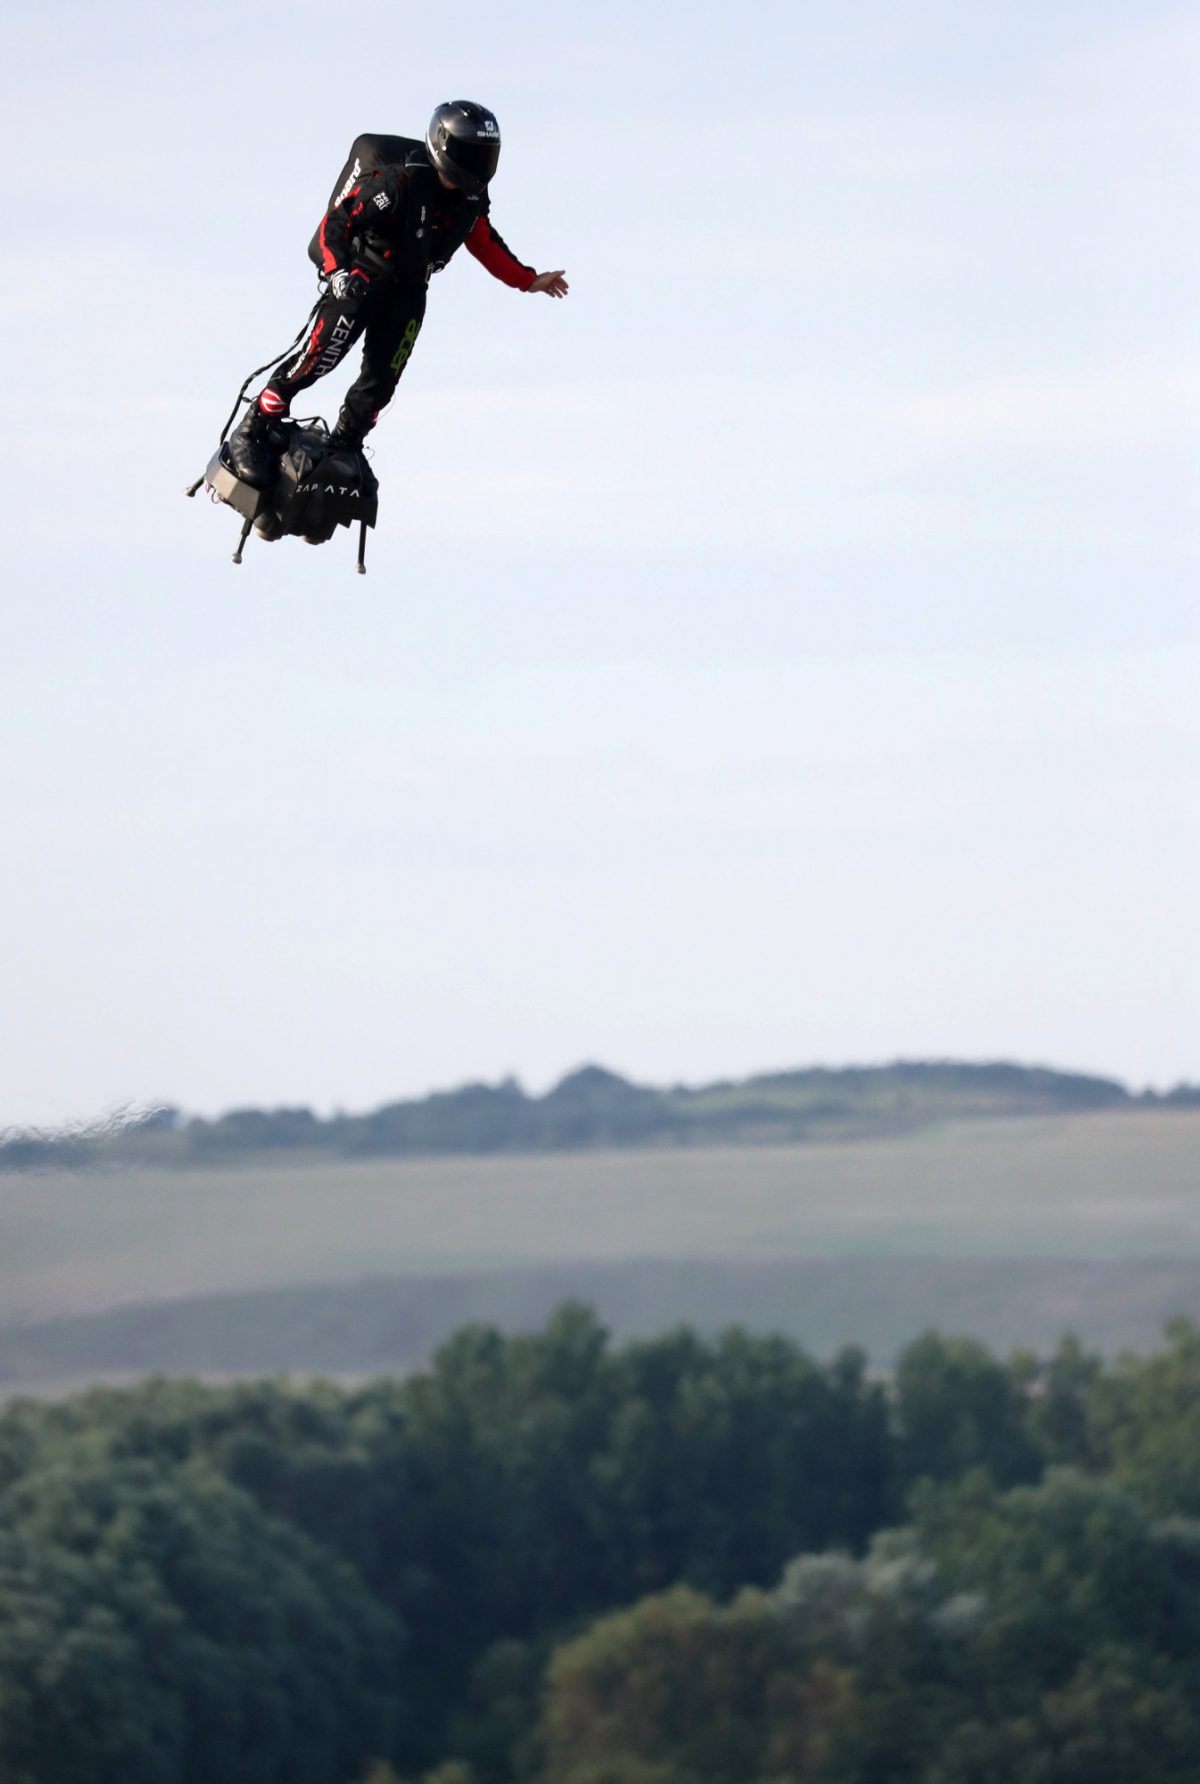 French inventor Franky Zapata takes off on a Flyboard for a second attempt to cross the English channel